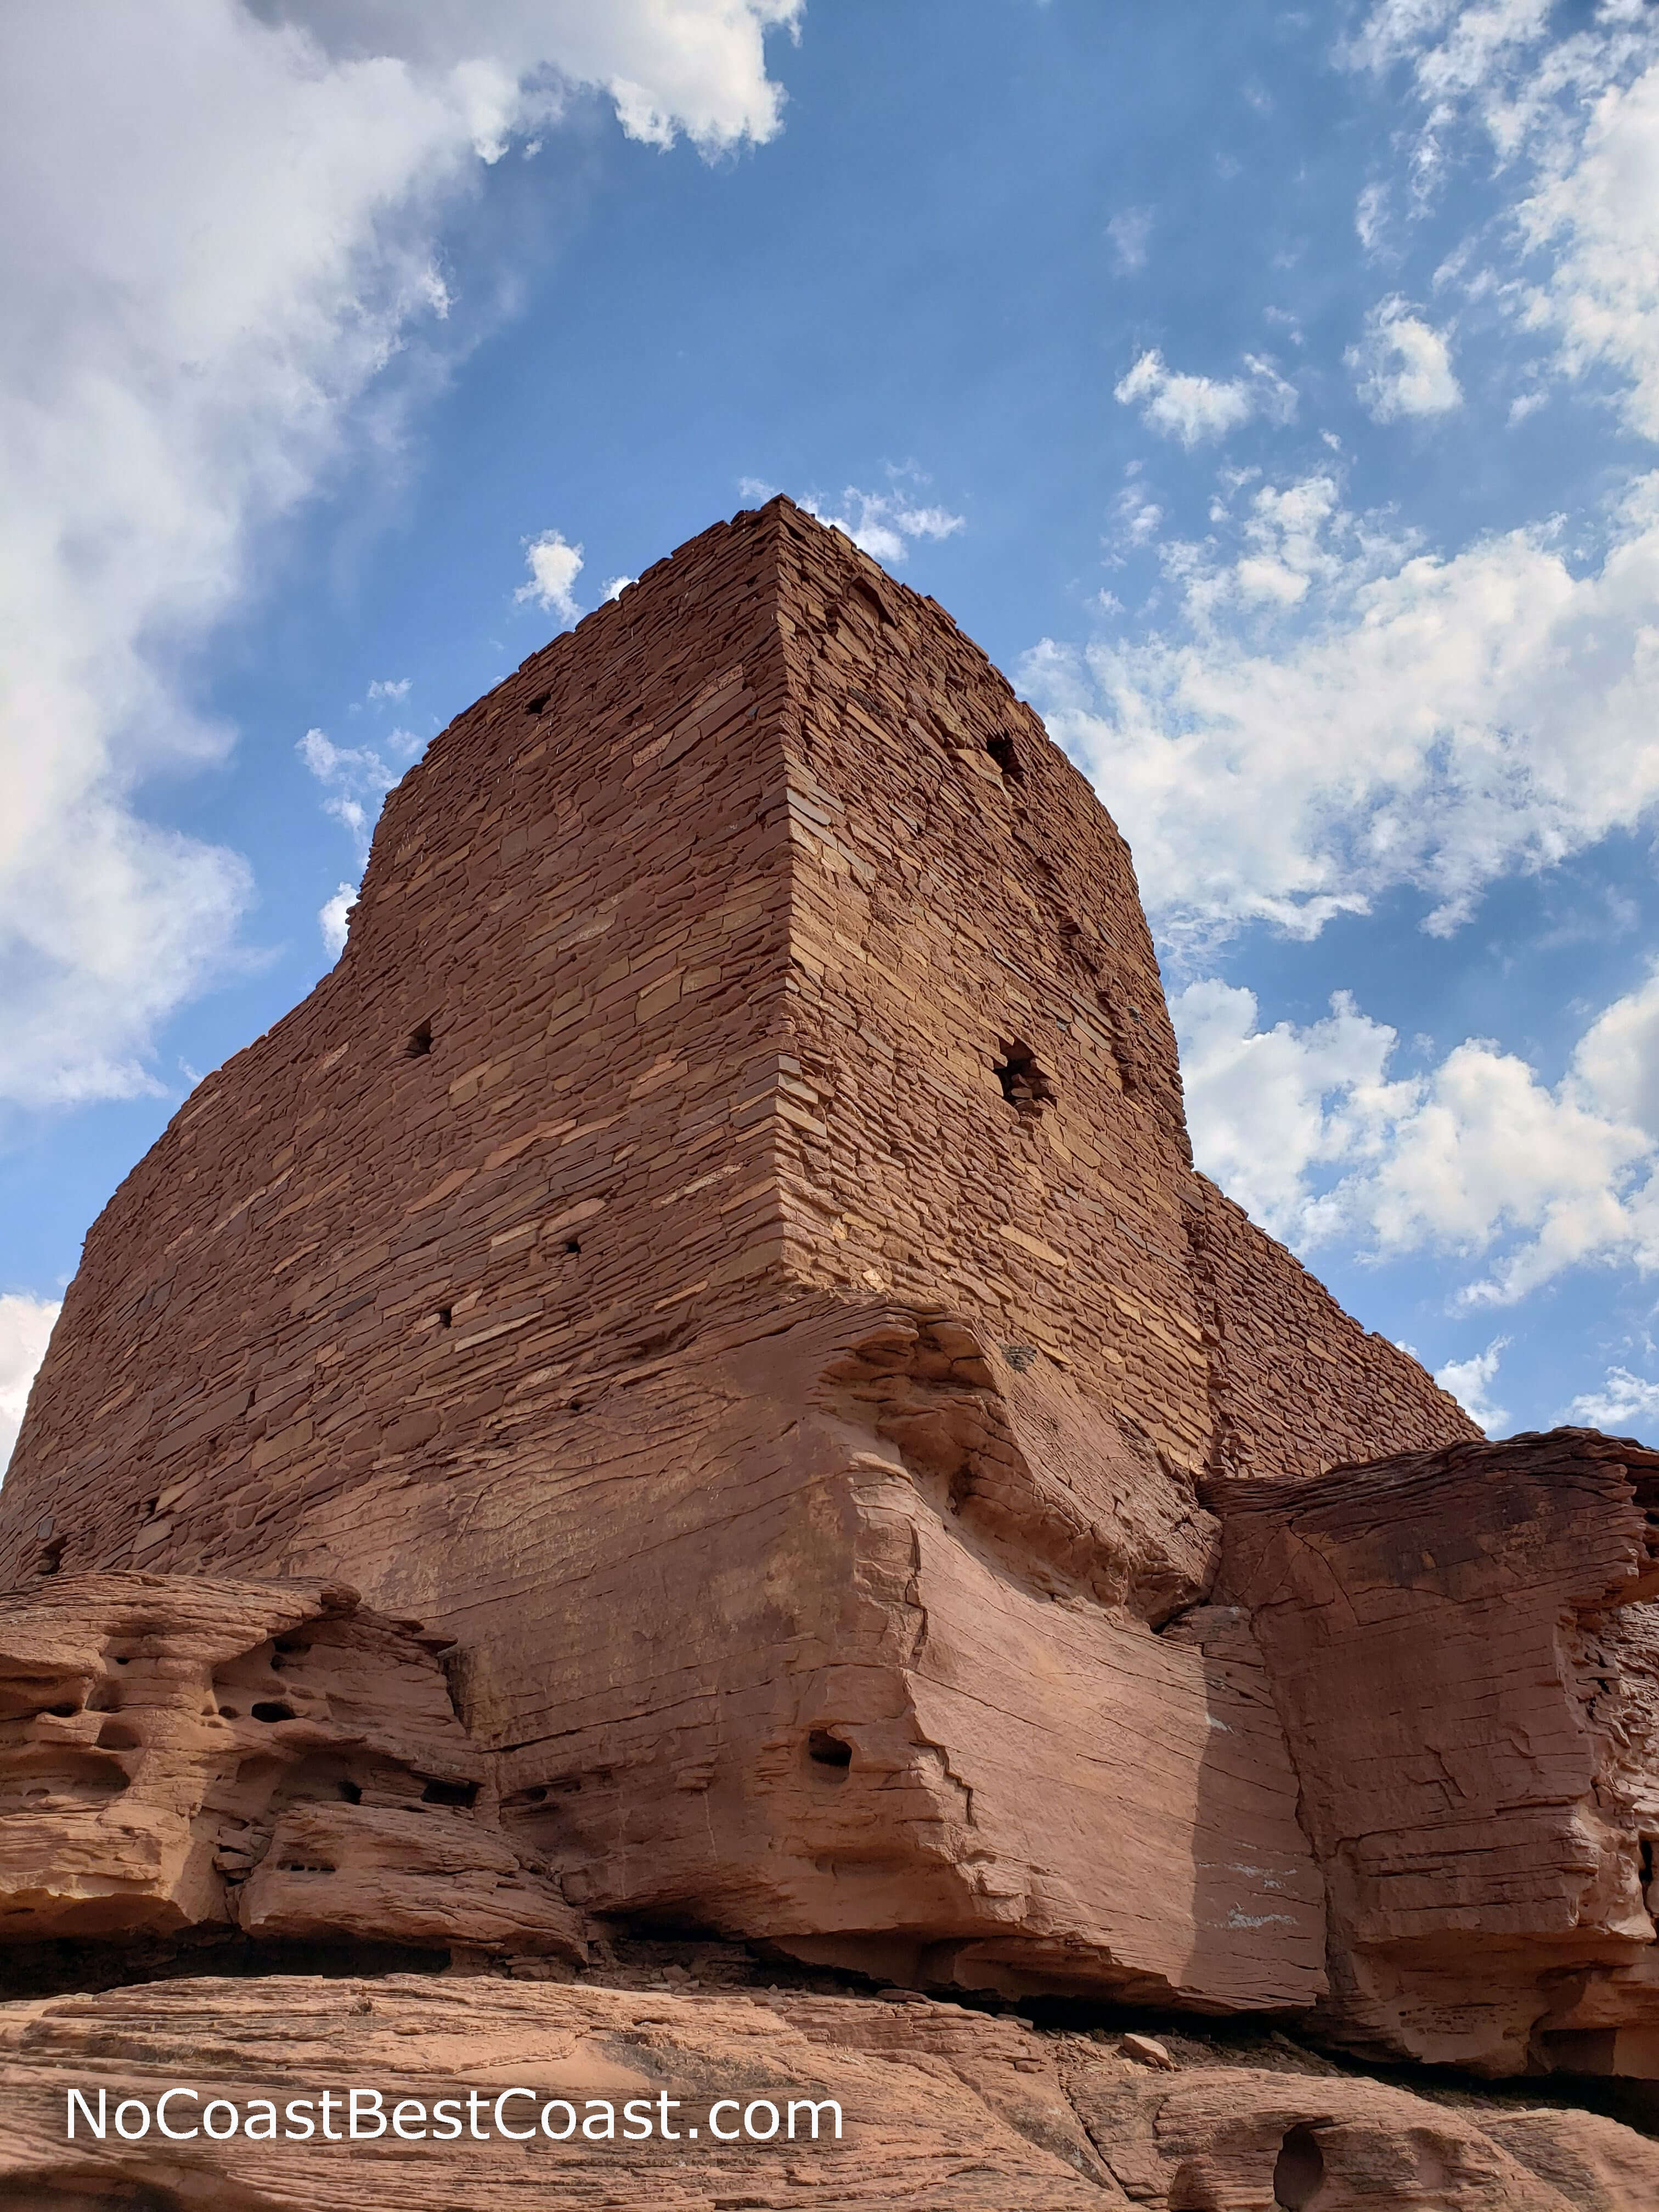 The high walls of Wukoki Pueblo from the back side